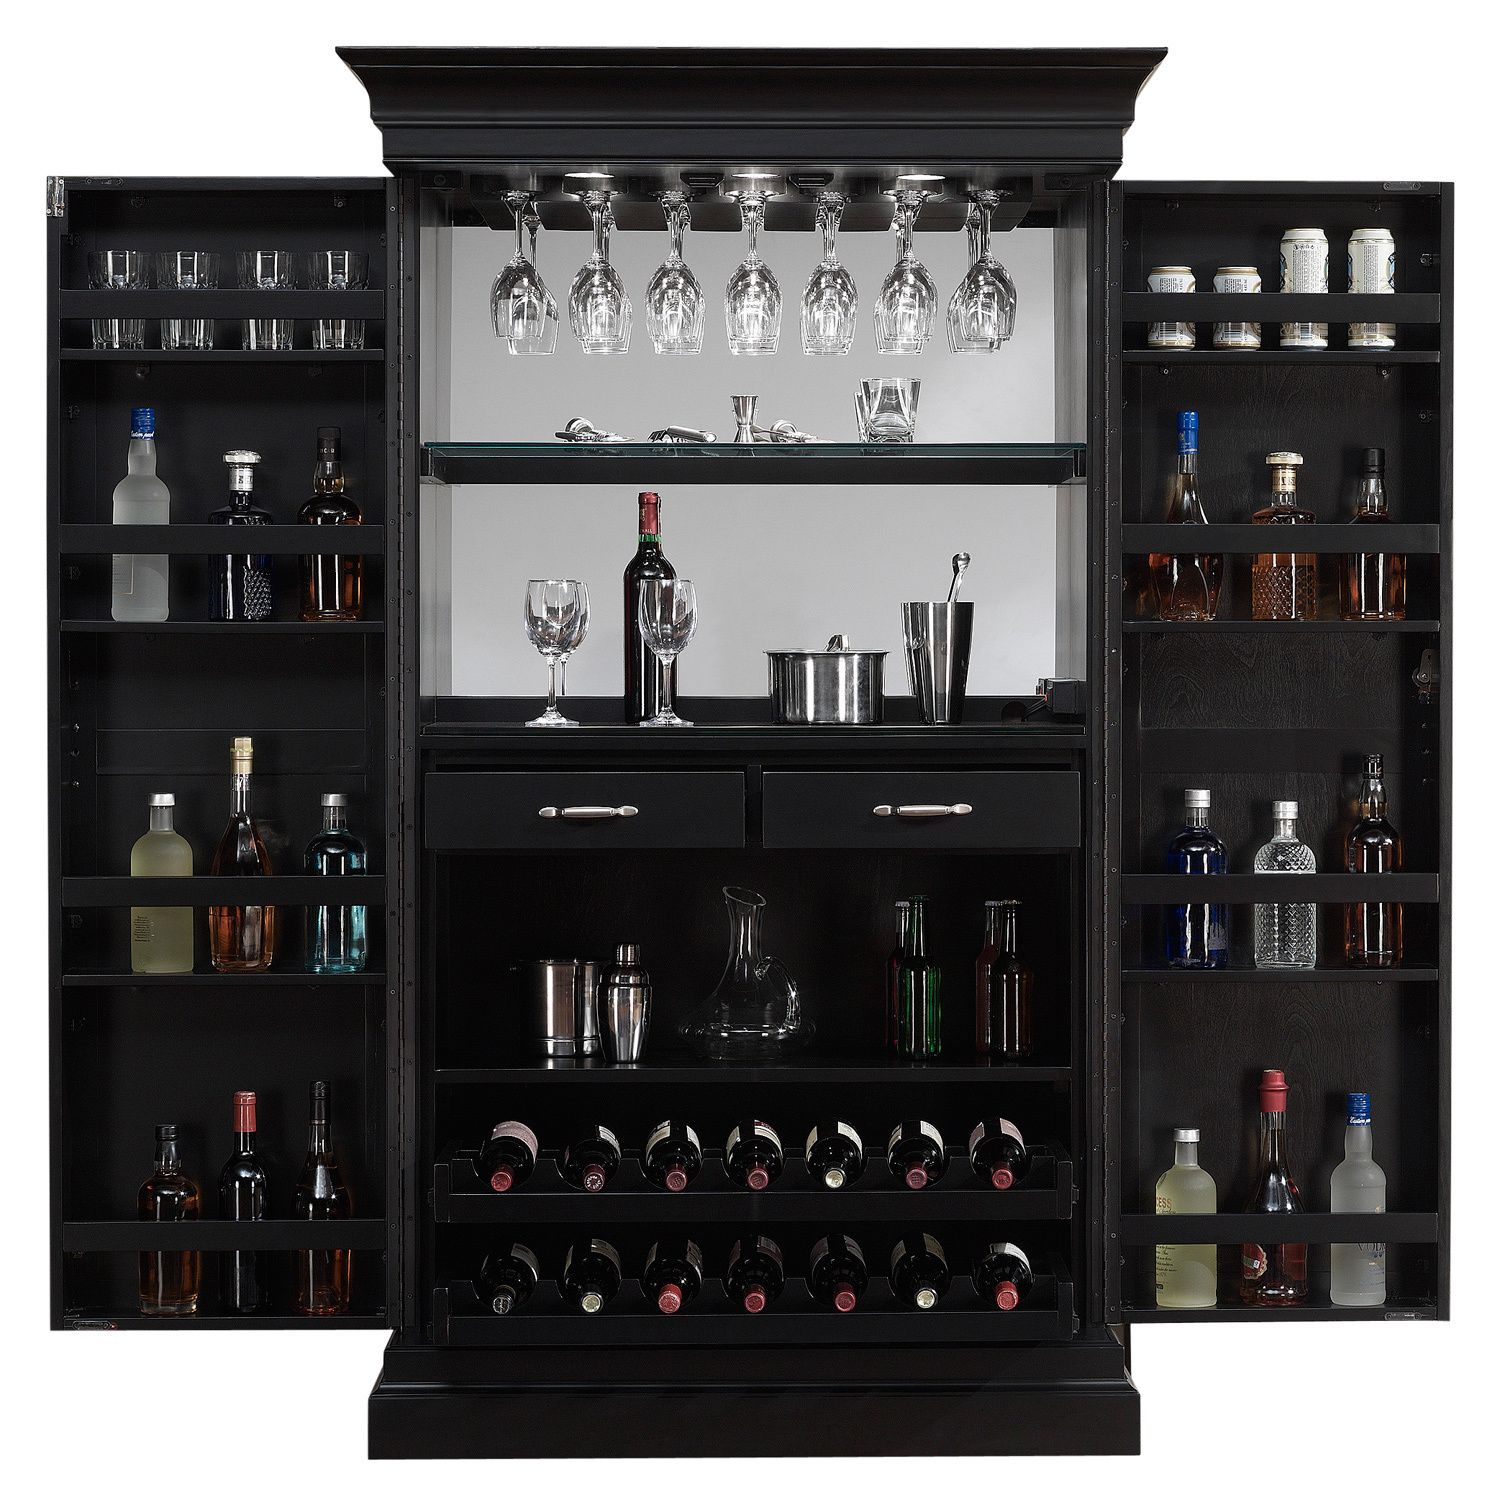 Ashley Heights Black Stain Home Bar Wine Cabinet. Ashley Heights Black Stain Home Bar Wine Cabinet   Black stains